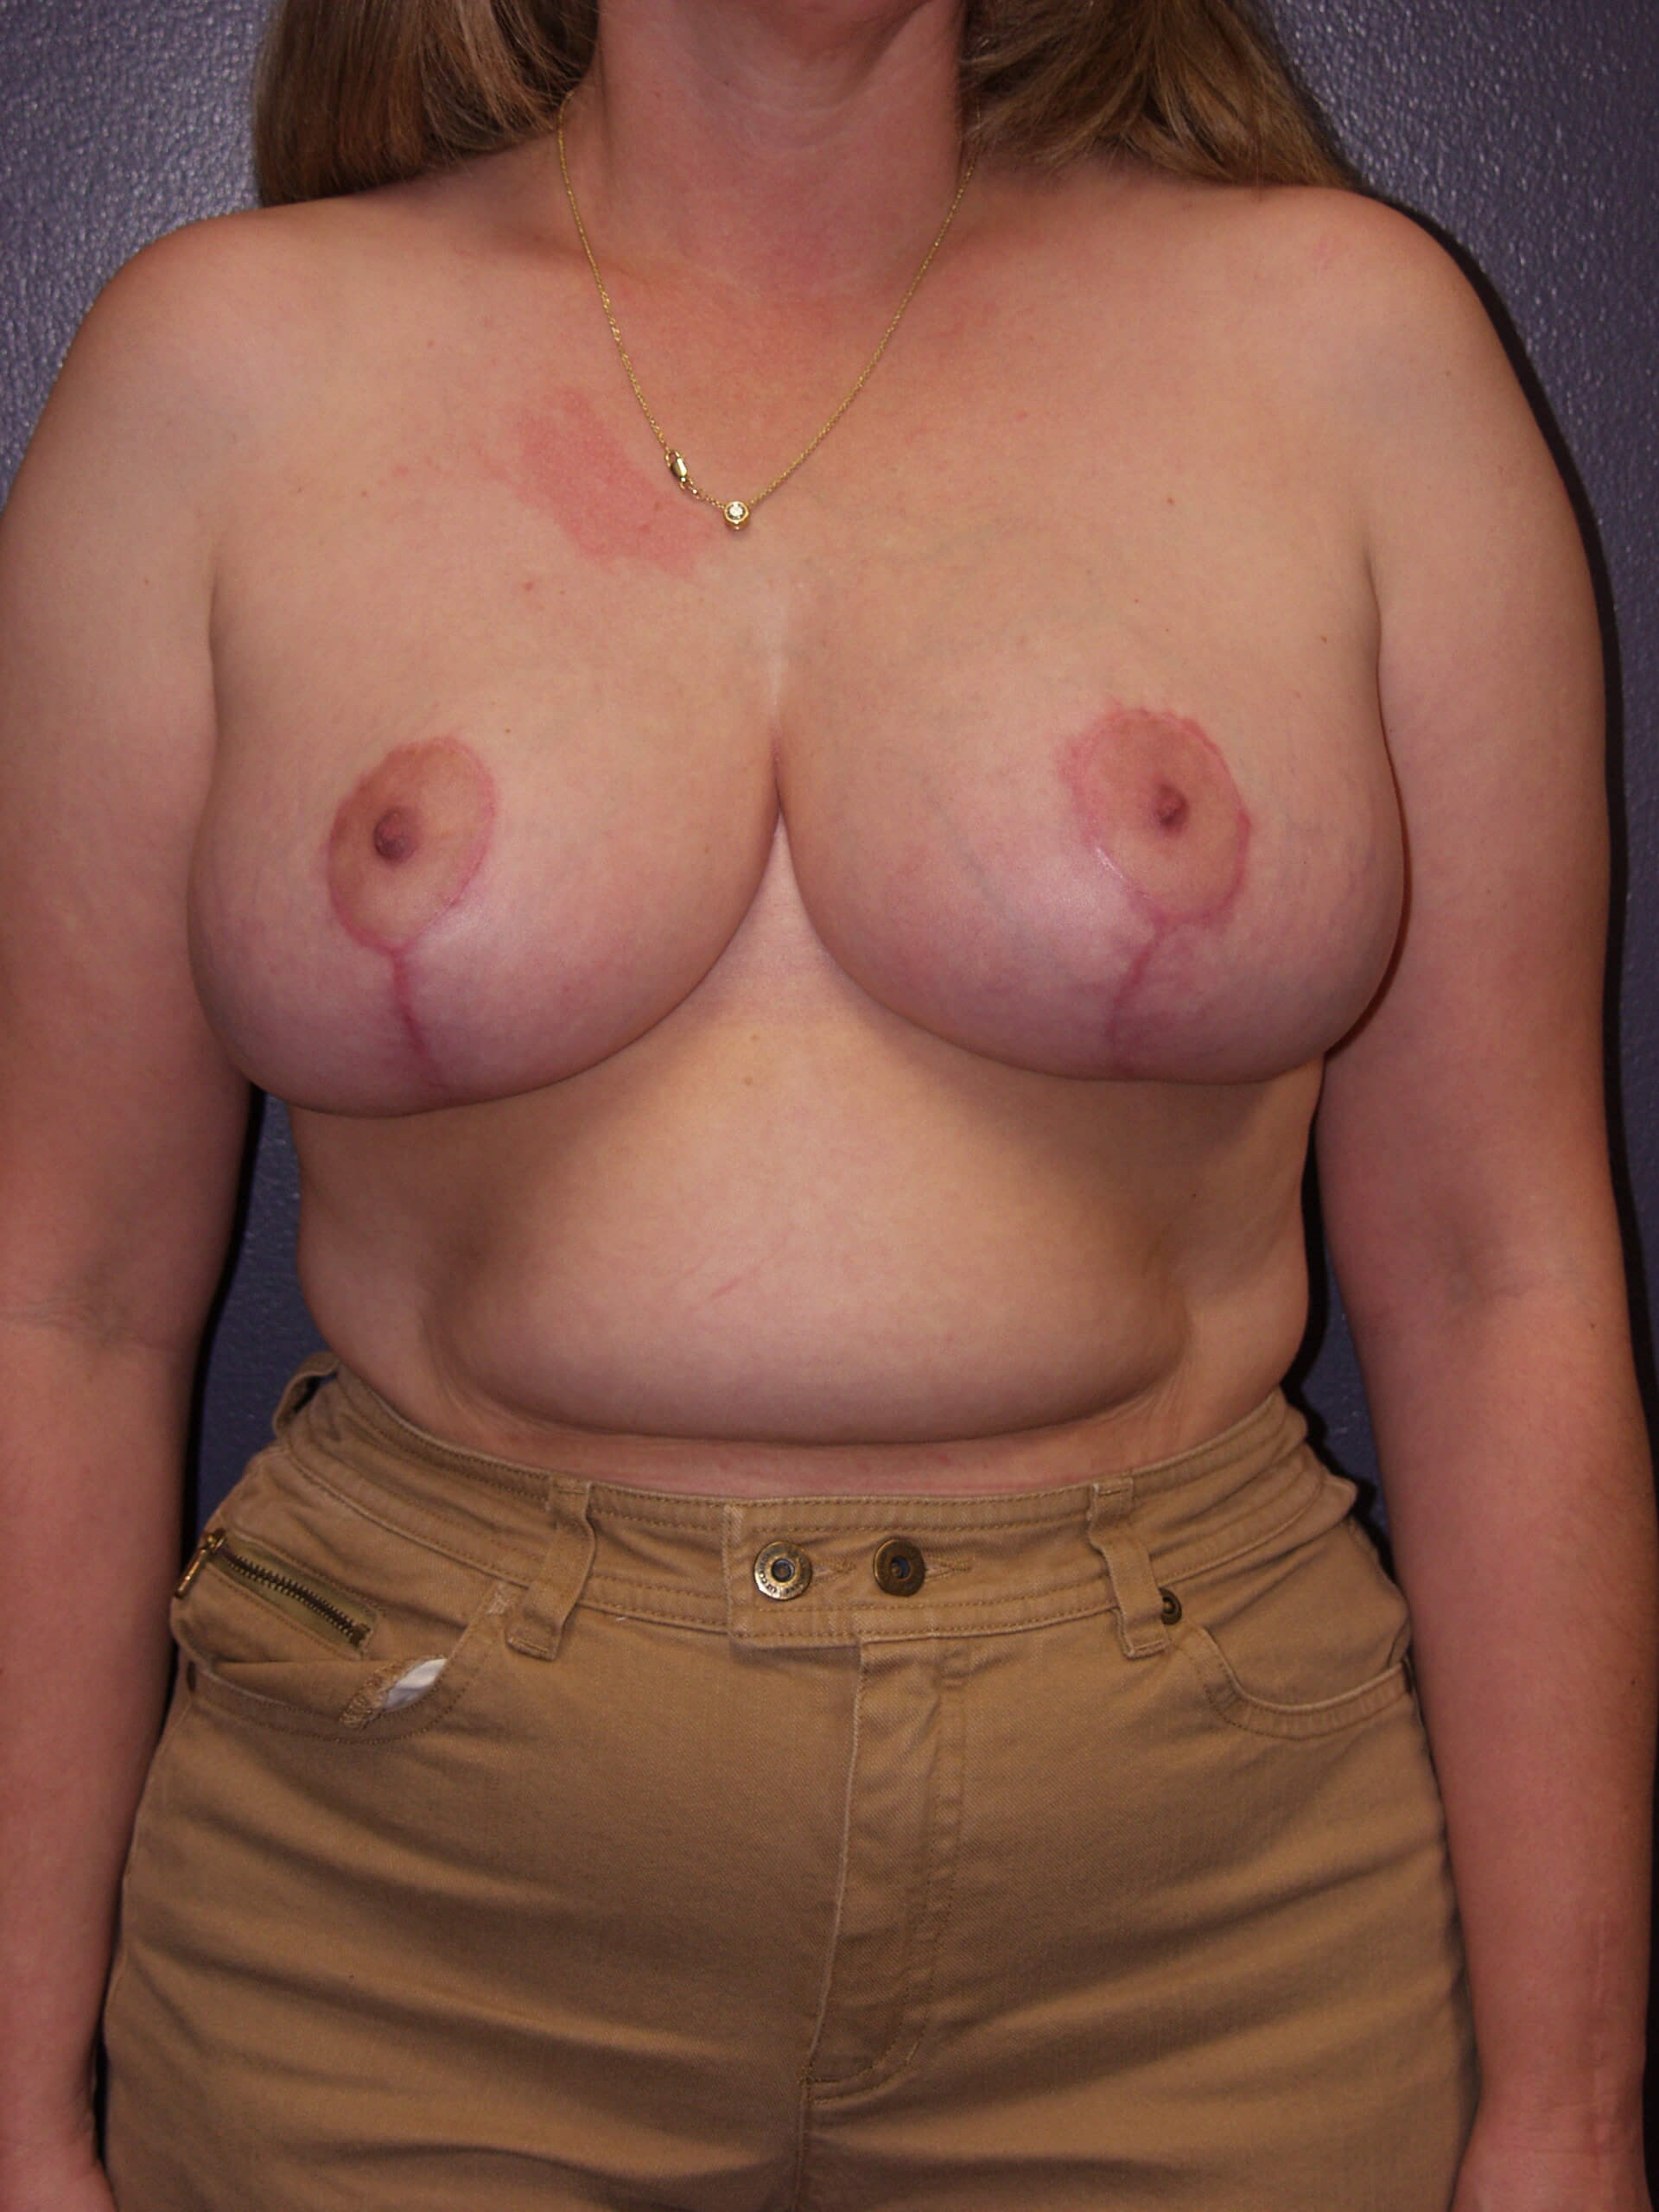 Breast Reduction 2 months post op